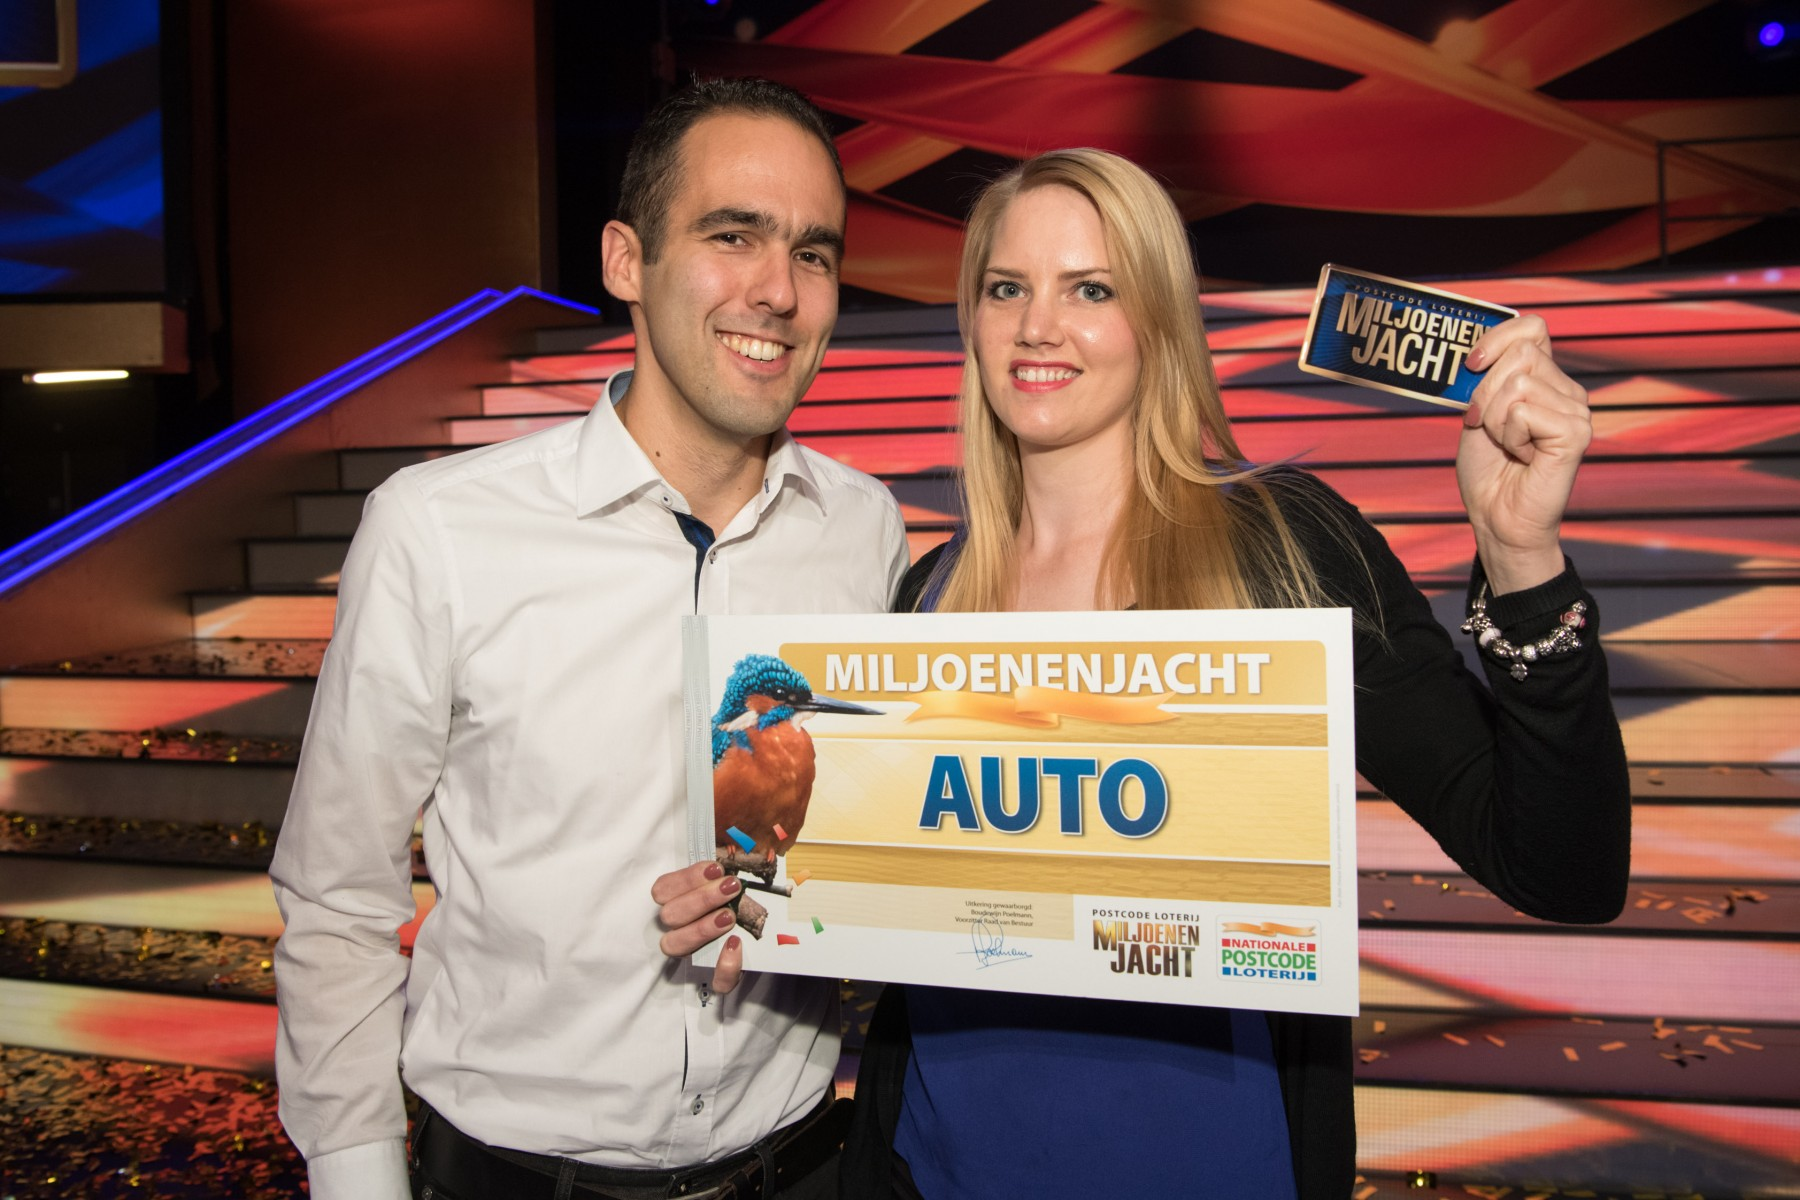 Esther uit Rotterdam wint auto